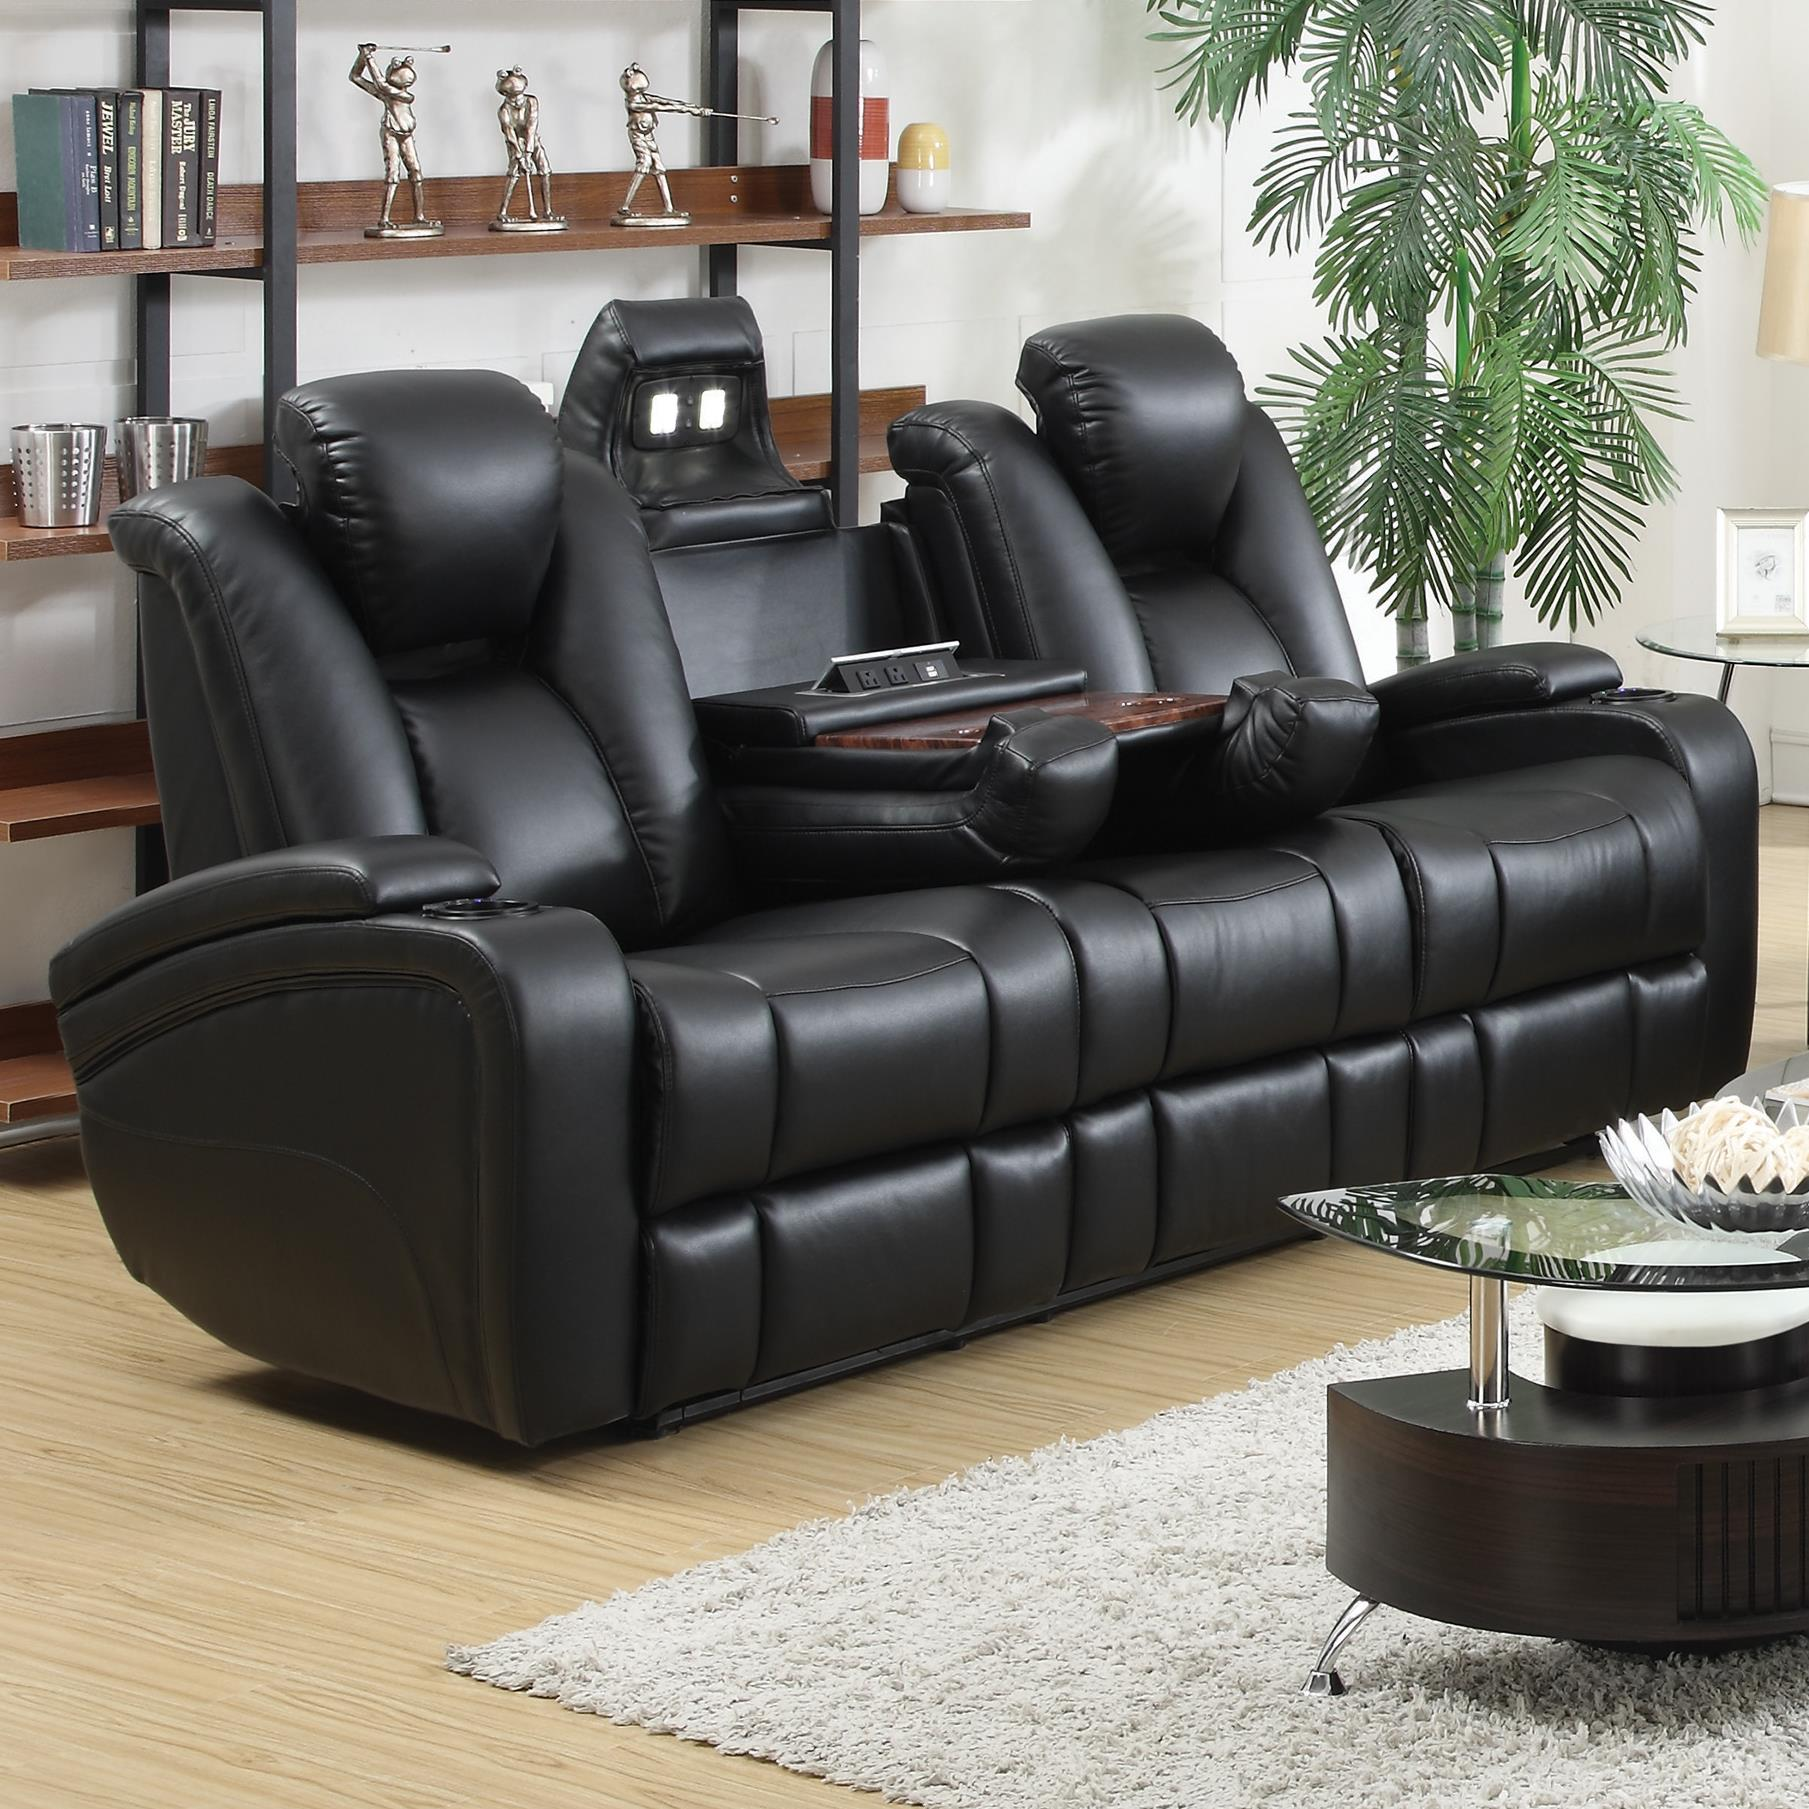 Reclining Power Sofa with Adjustable Headrests & Storage in